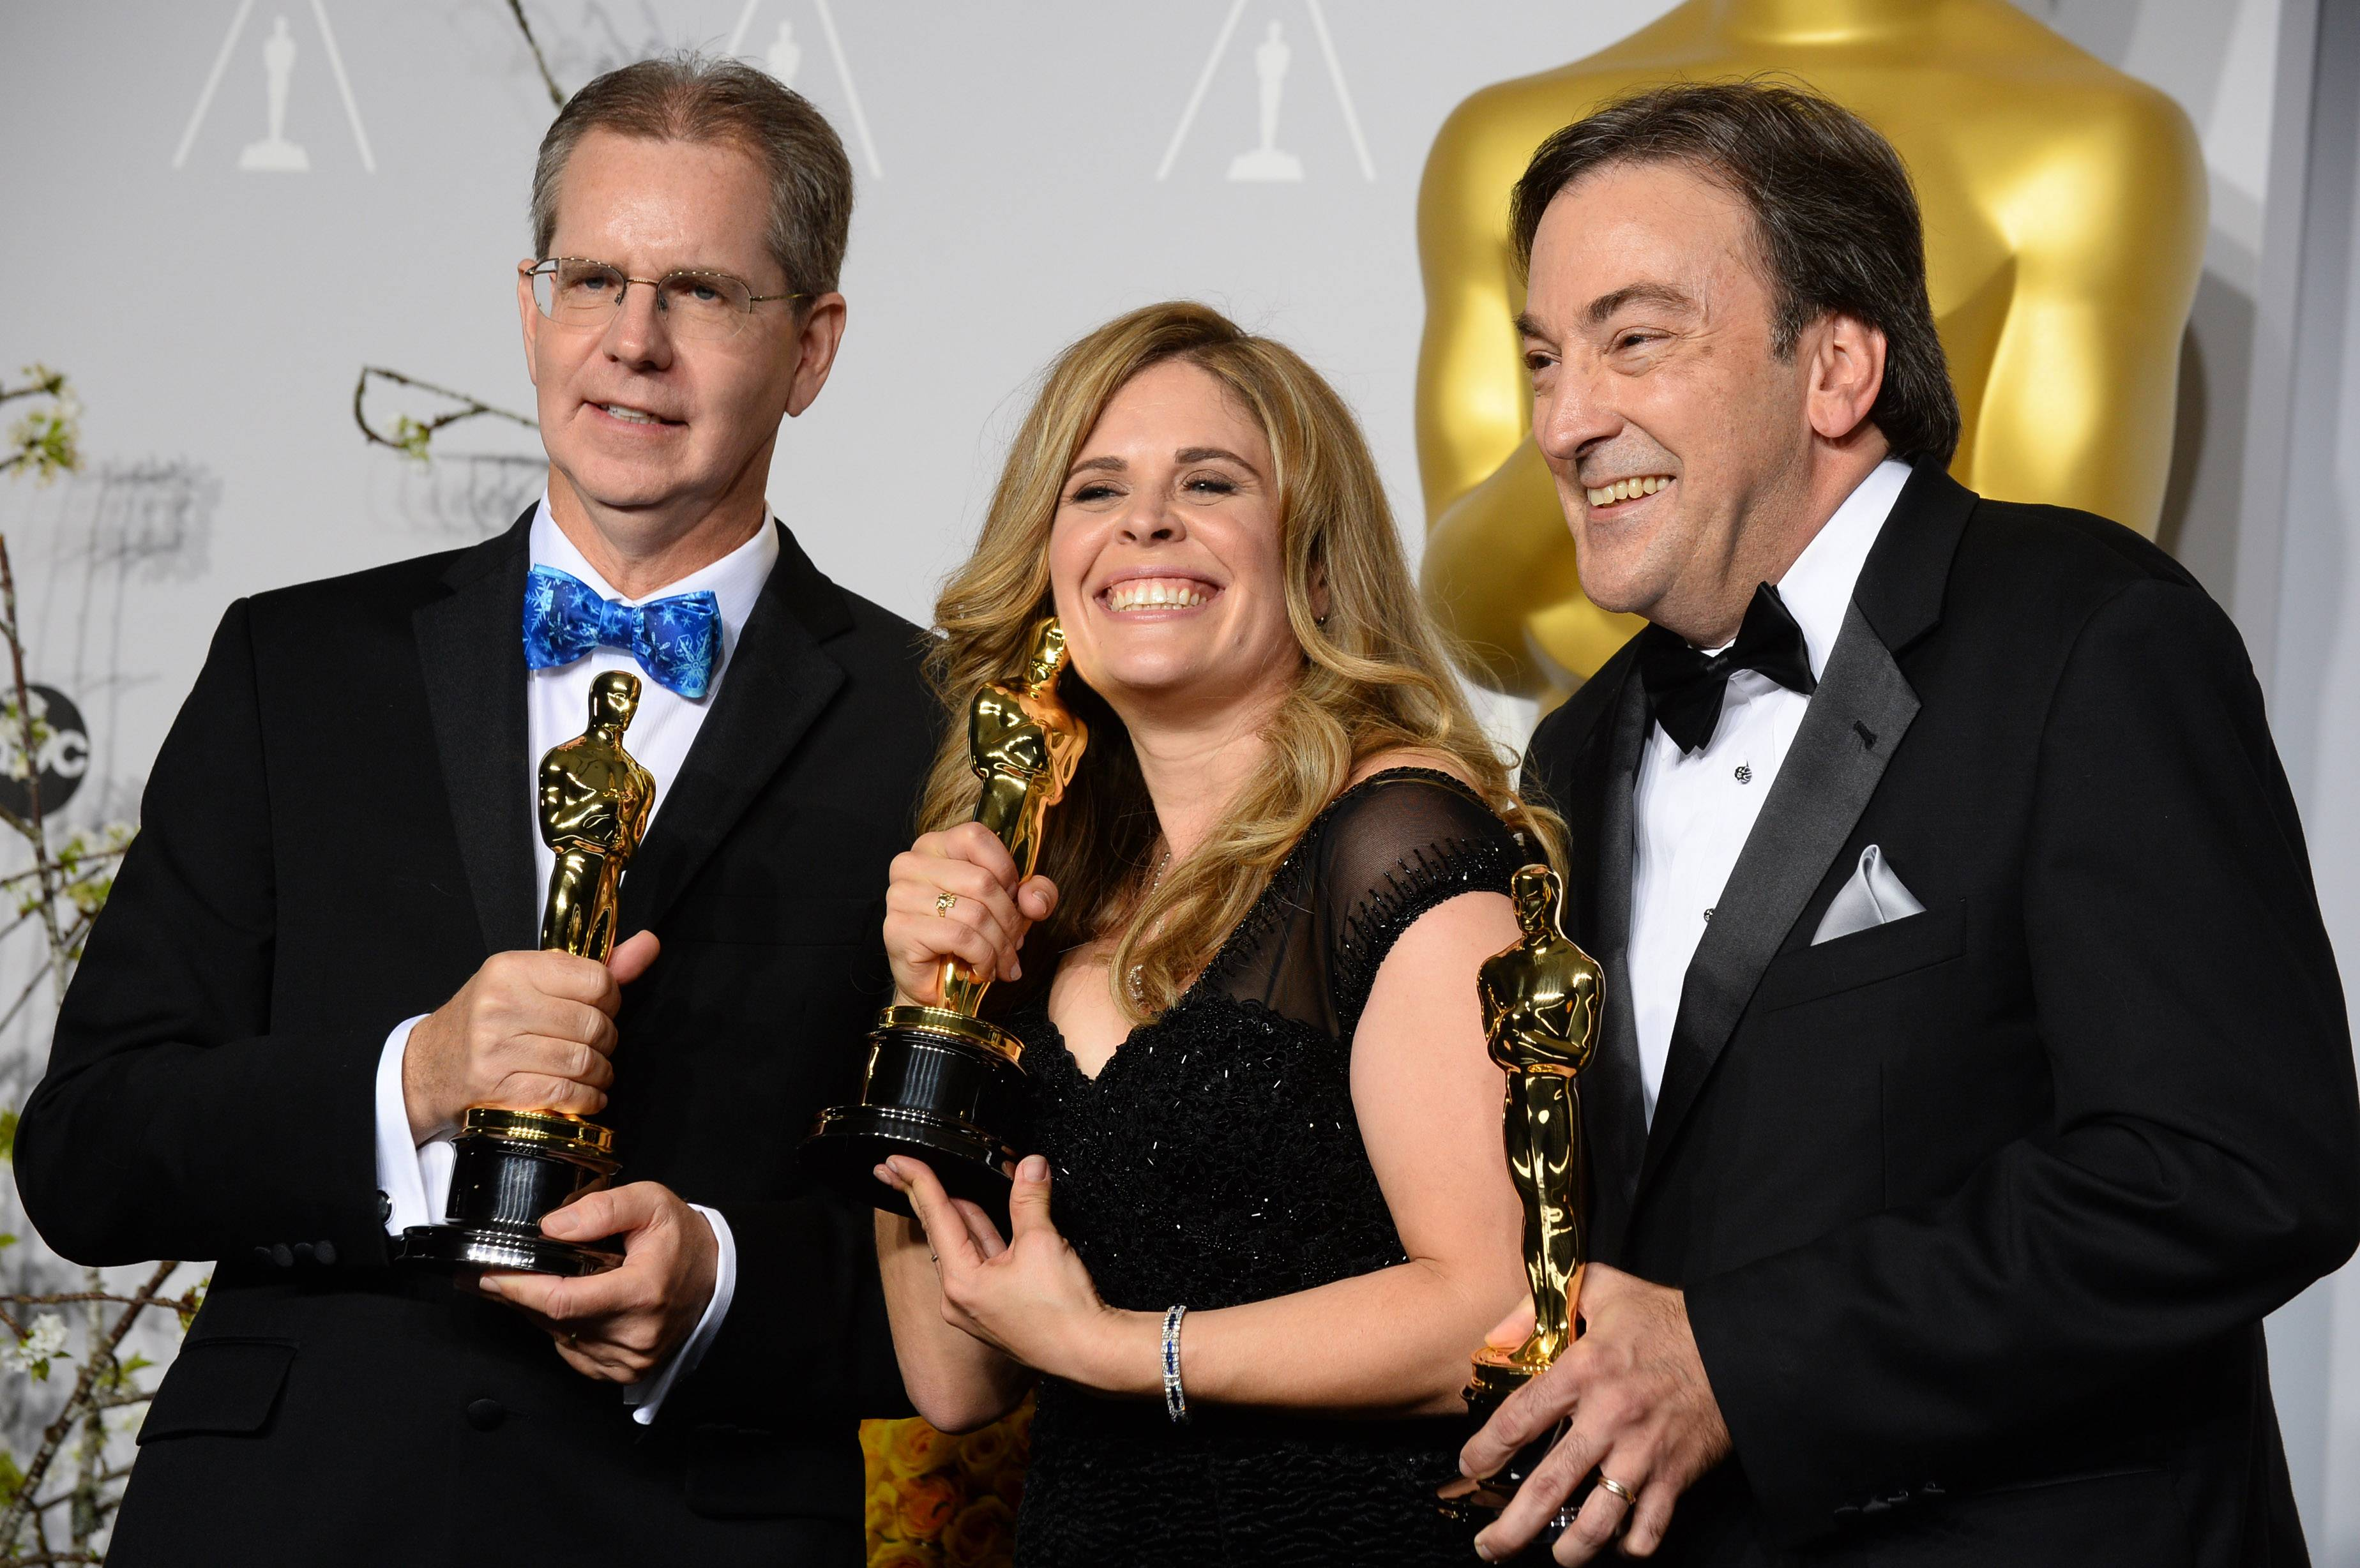 """Frozen"" director and screenwriter Jennifer Lee, center, shown here with Chris Buck, left, and Peter Del Vecho at this year's Oscars, spoke at the University of New Hampshire commencement."